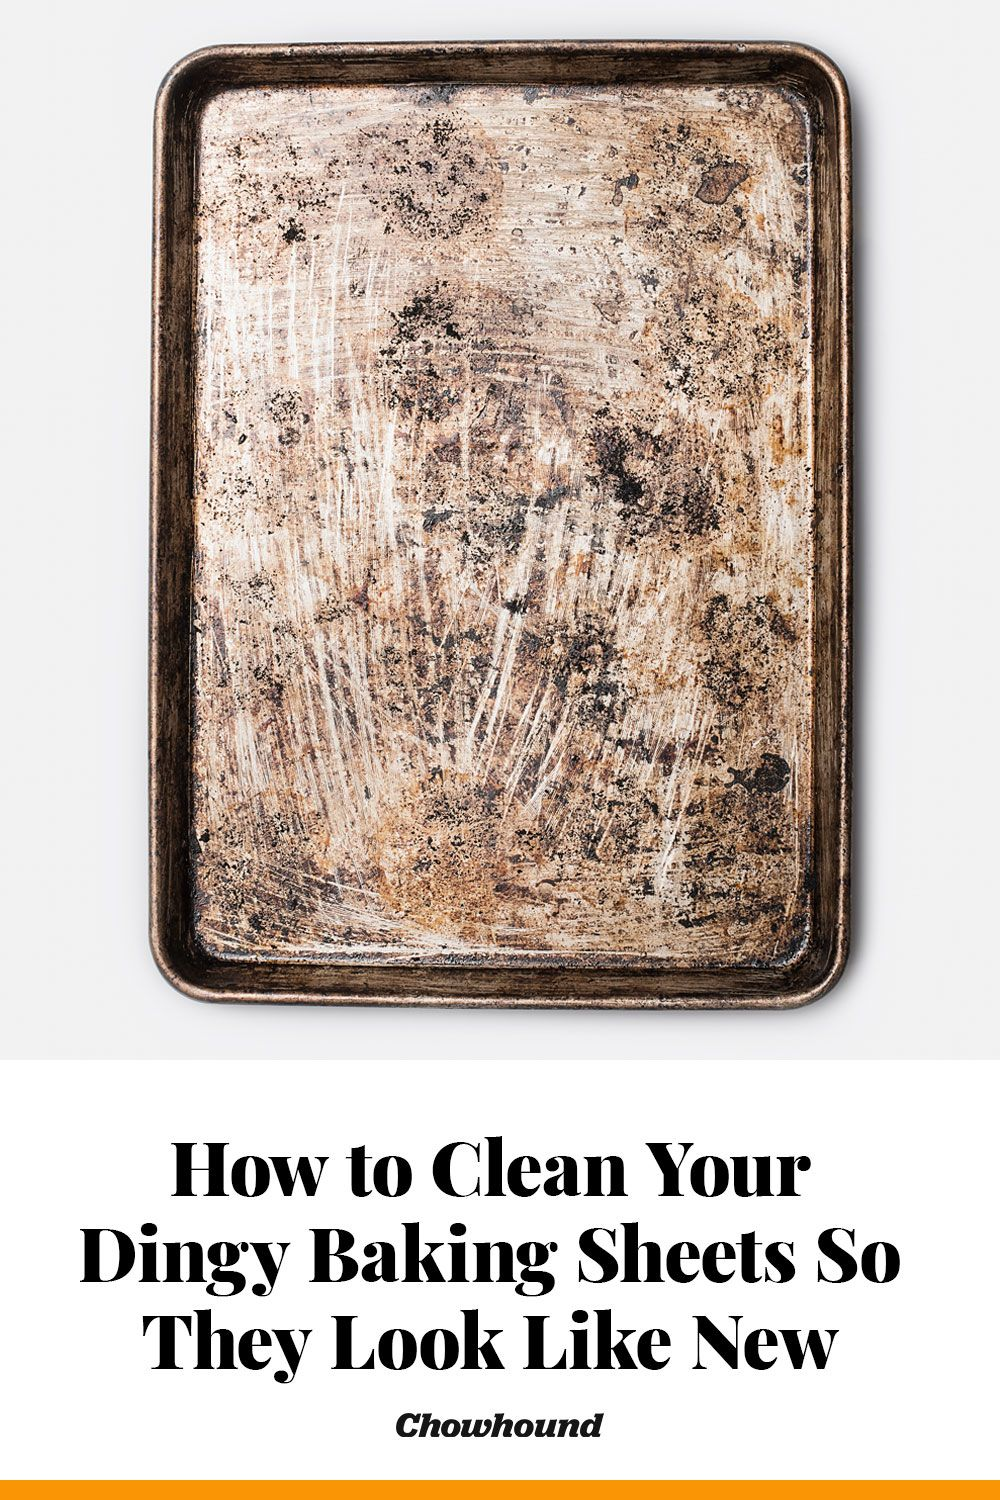 How To Clean Your Dingy Baking Sheets So They Look Like New Again Cleaning Baking Sheets Baking Sheets Cleaning